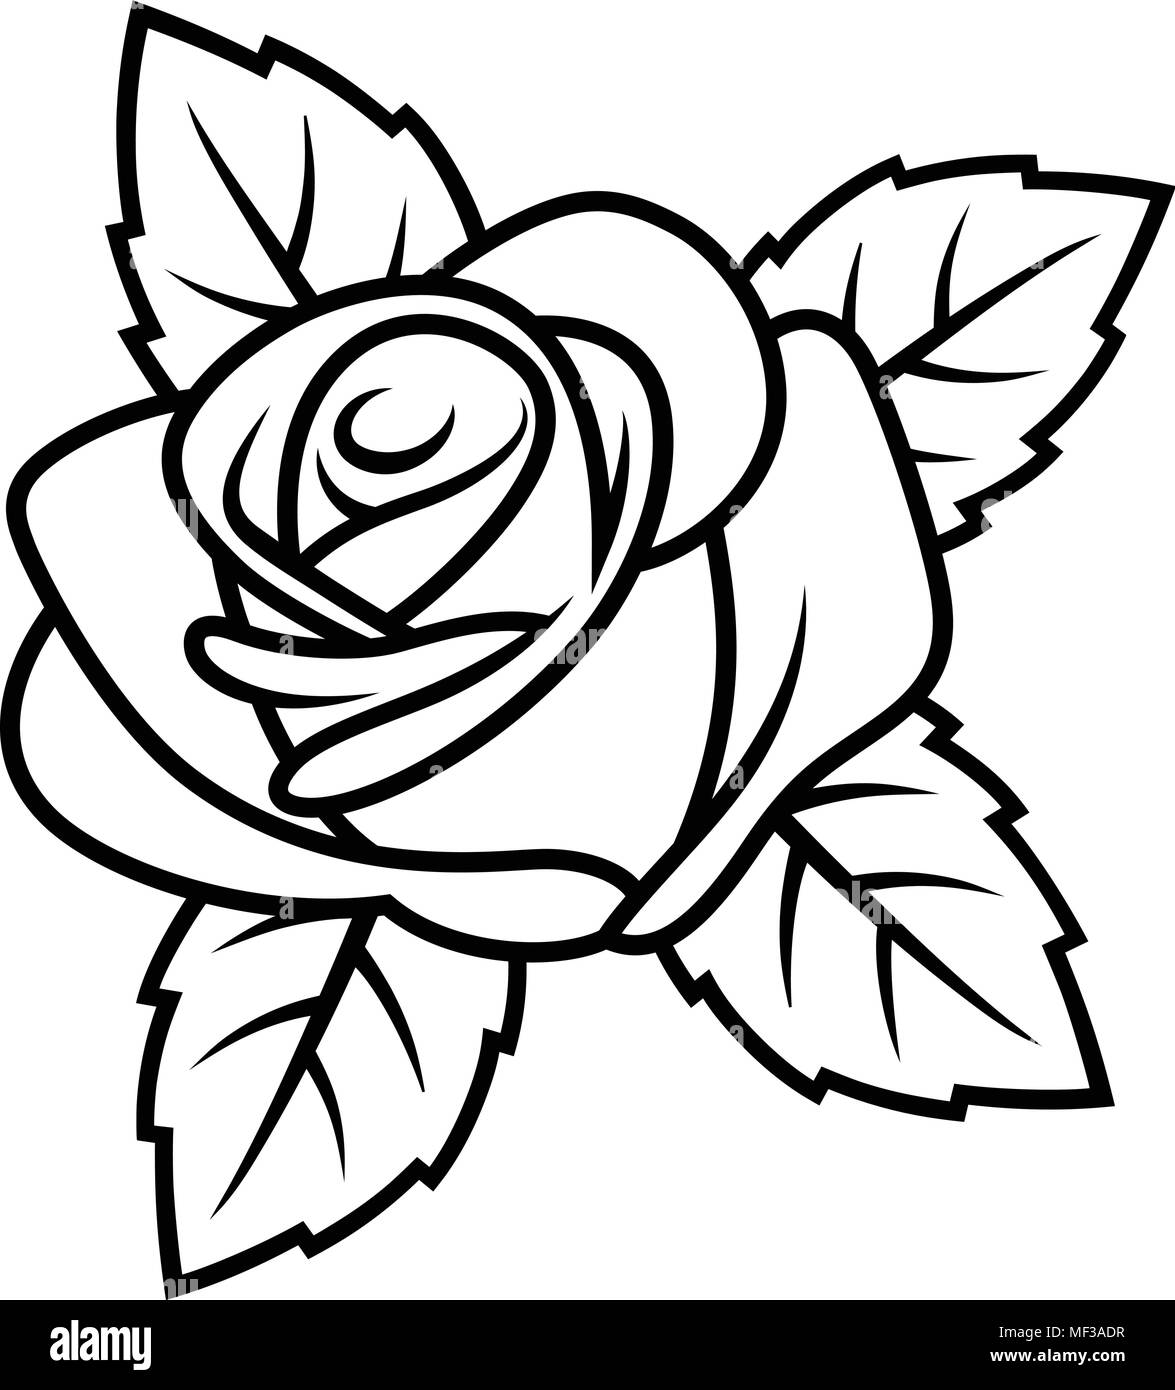 Sketch of rose isolated on white background use for fabric design sketch of rose isolated on white background use for fabric design tattoo pattern and decorating greeting cards invitations m4hsunfo